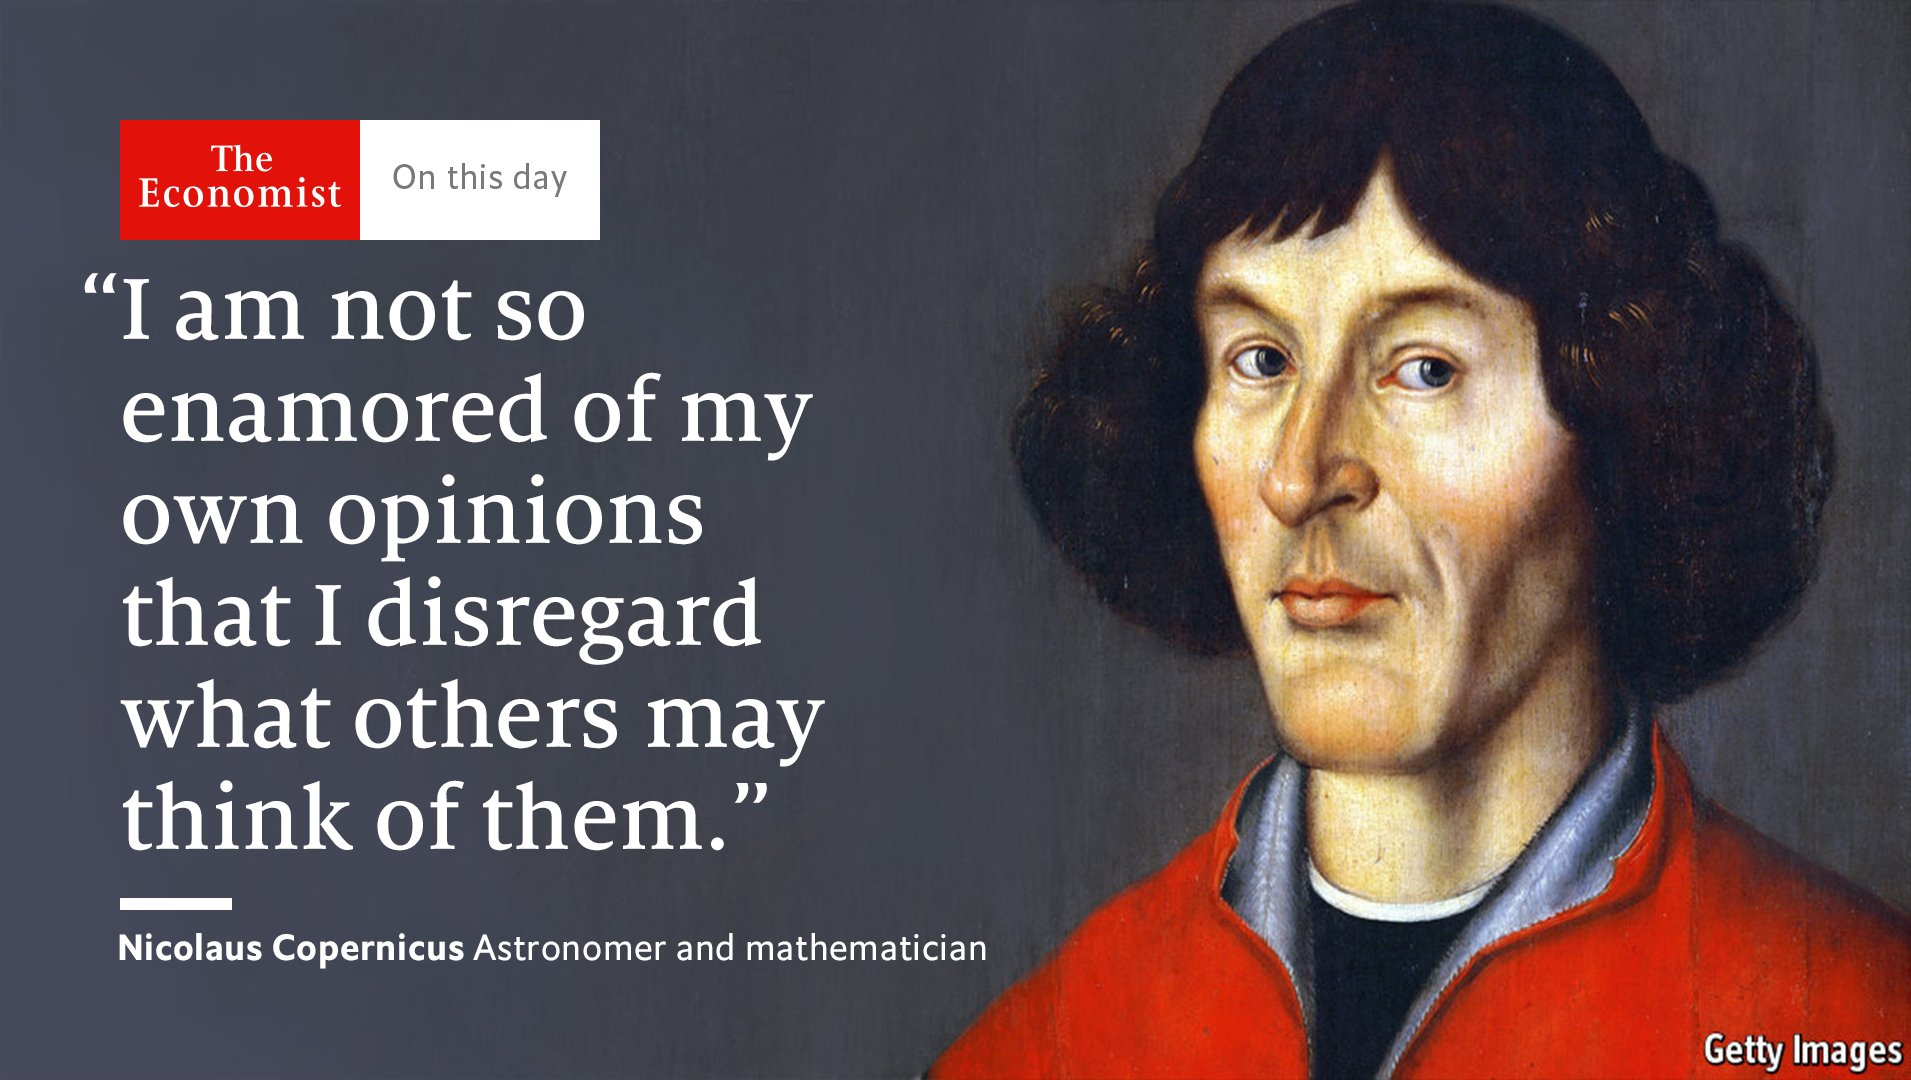 Nicolaus Copernicus died #OnThisDay 1543. His heliocentric model of the universe revolutionised astronomy  https://t.co/A1dQIi3qHt https://t.co/Wf6TAGzd20